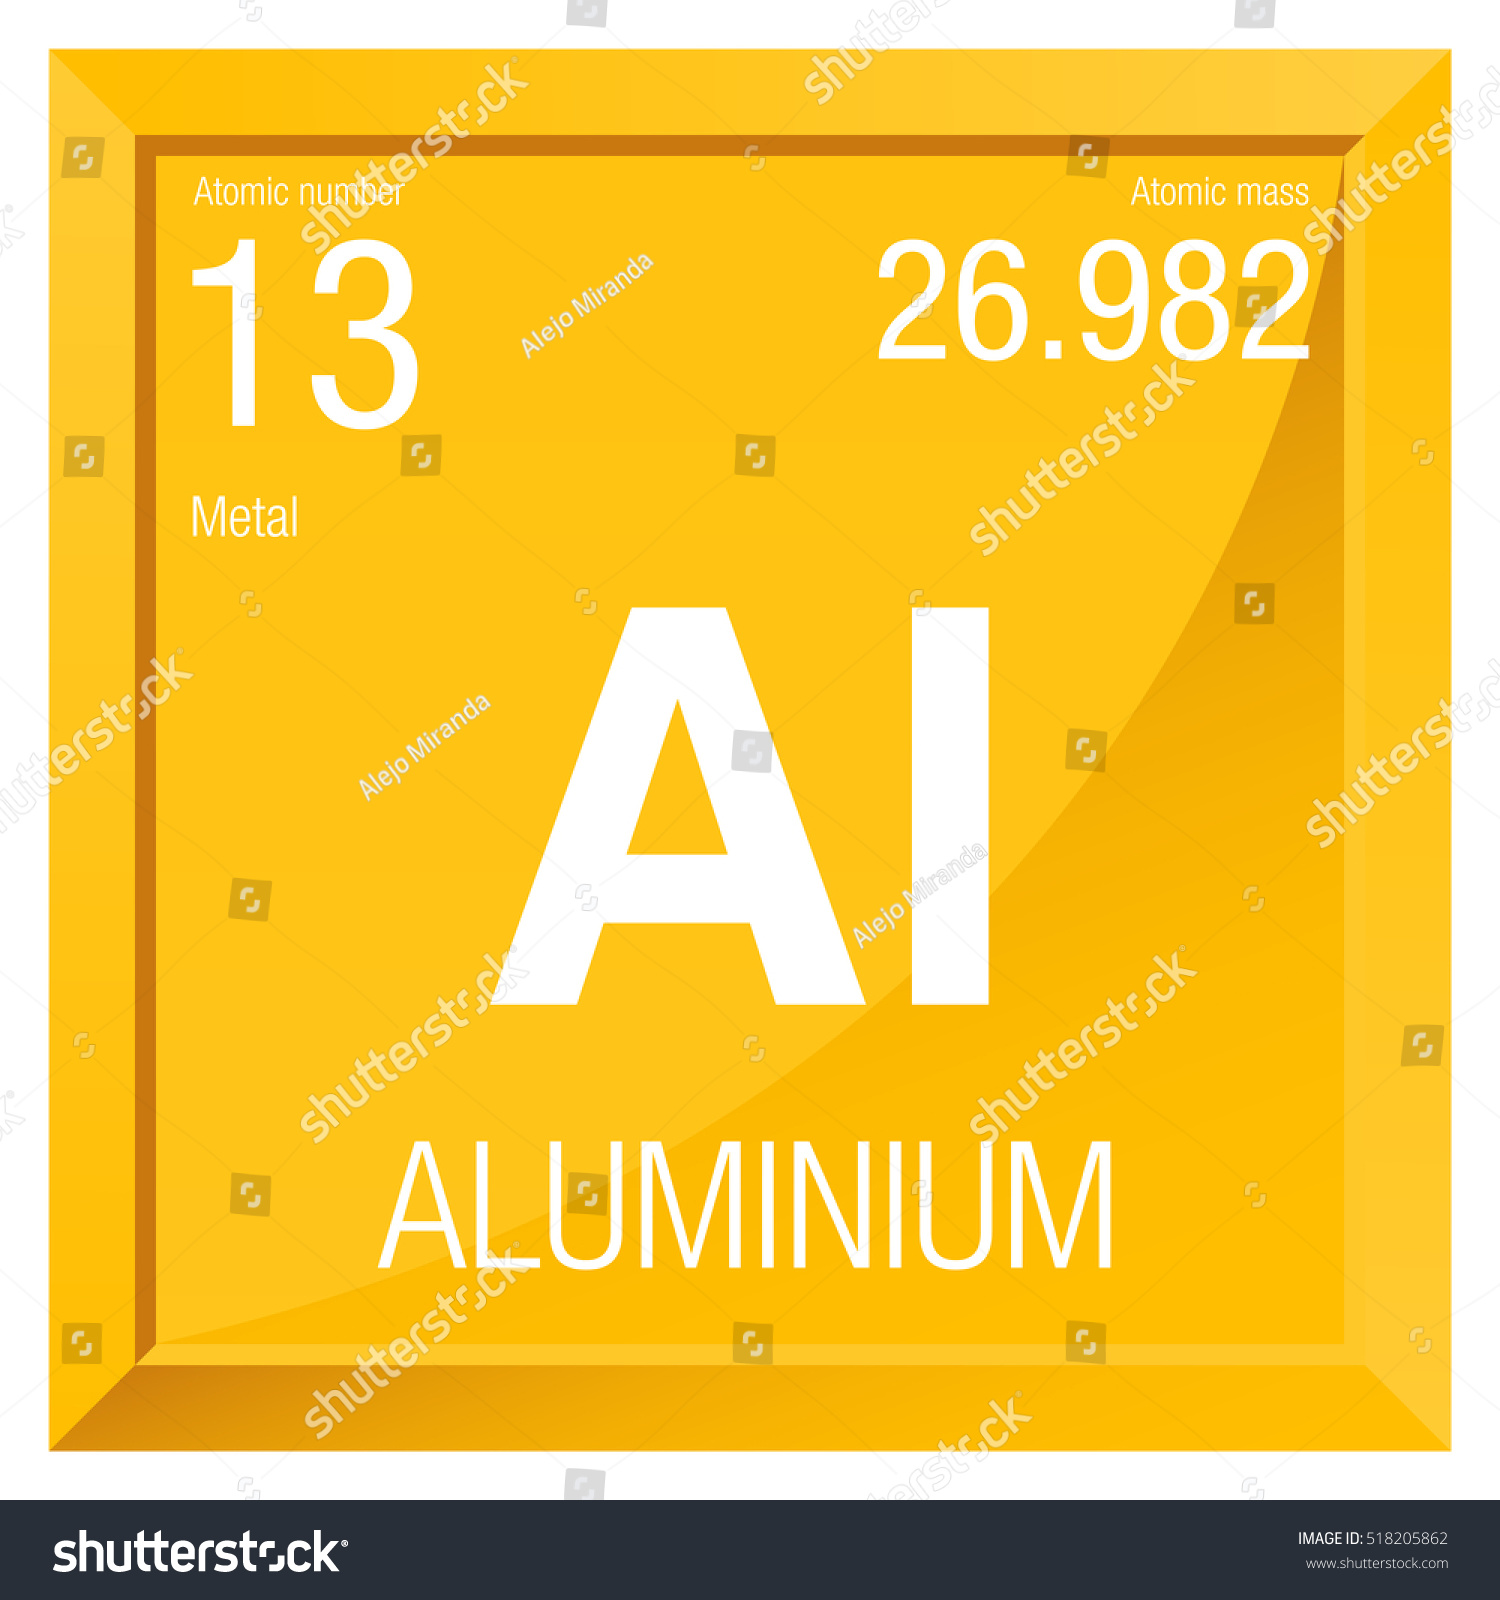 aluminum the 13th element on the